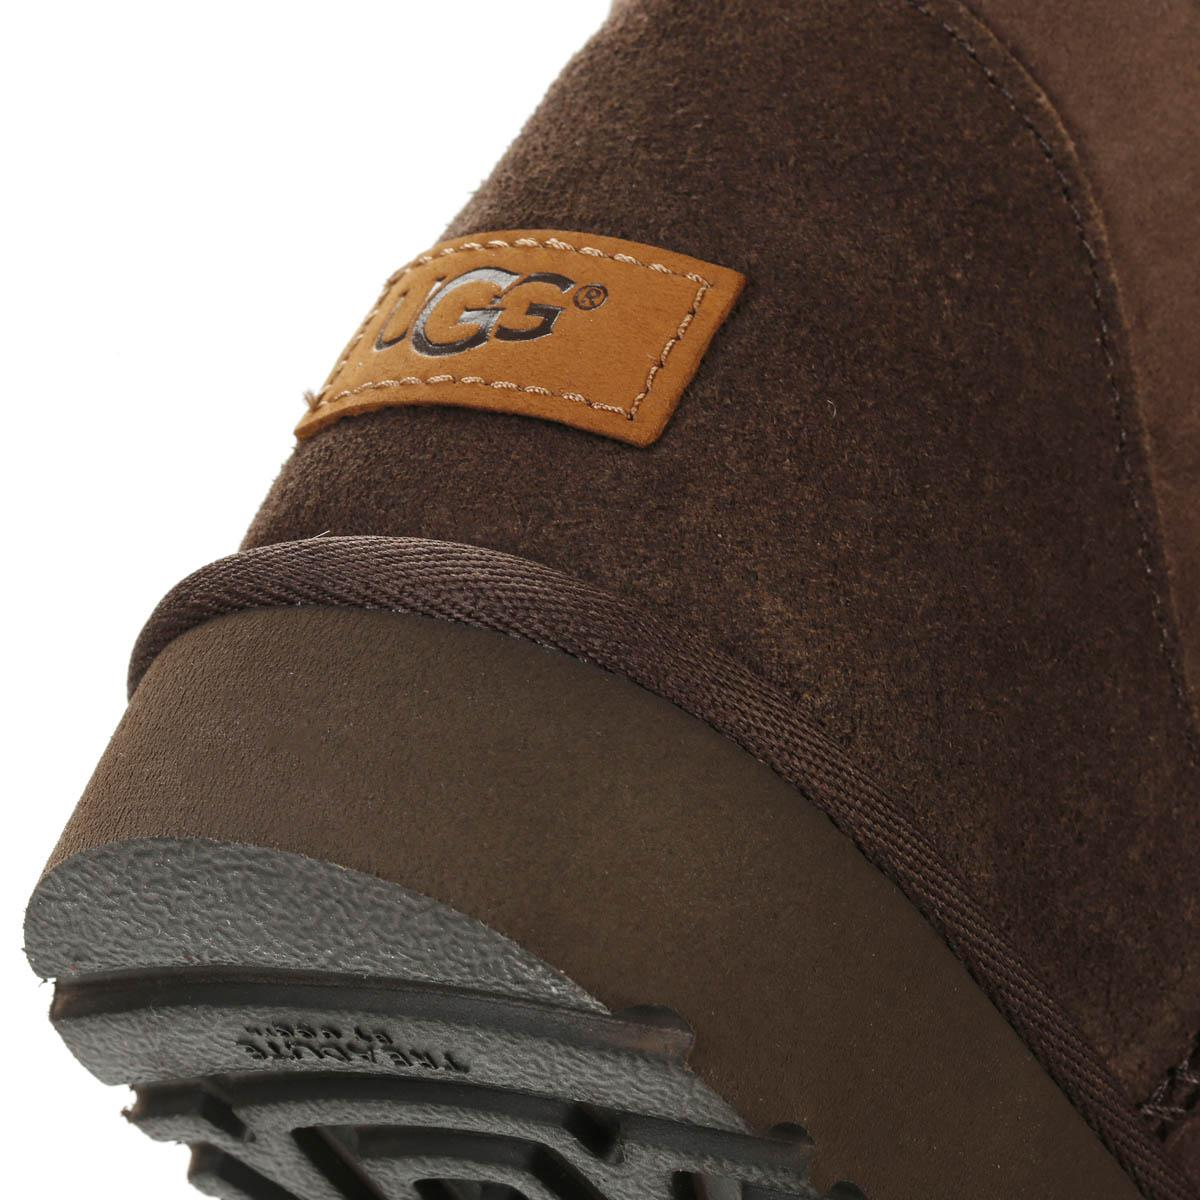 560752af67c where to buy ugg australia women s bailey button triplet boot ...